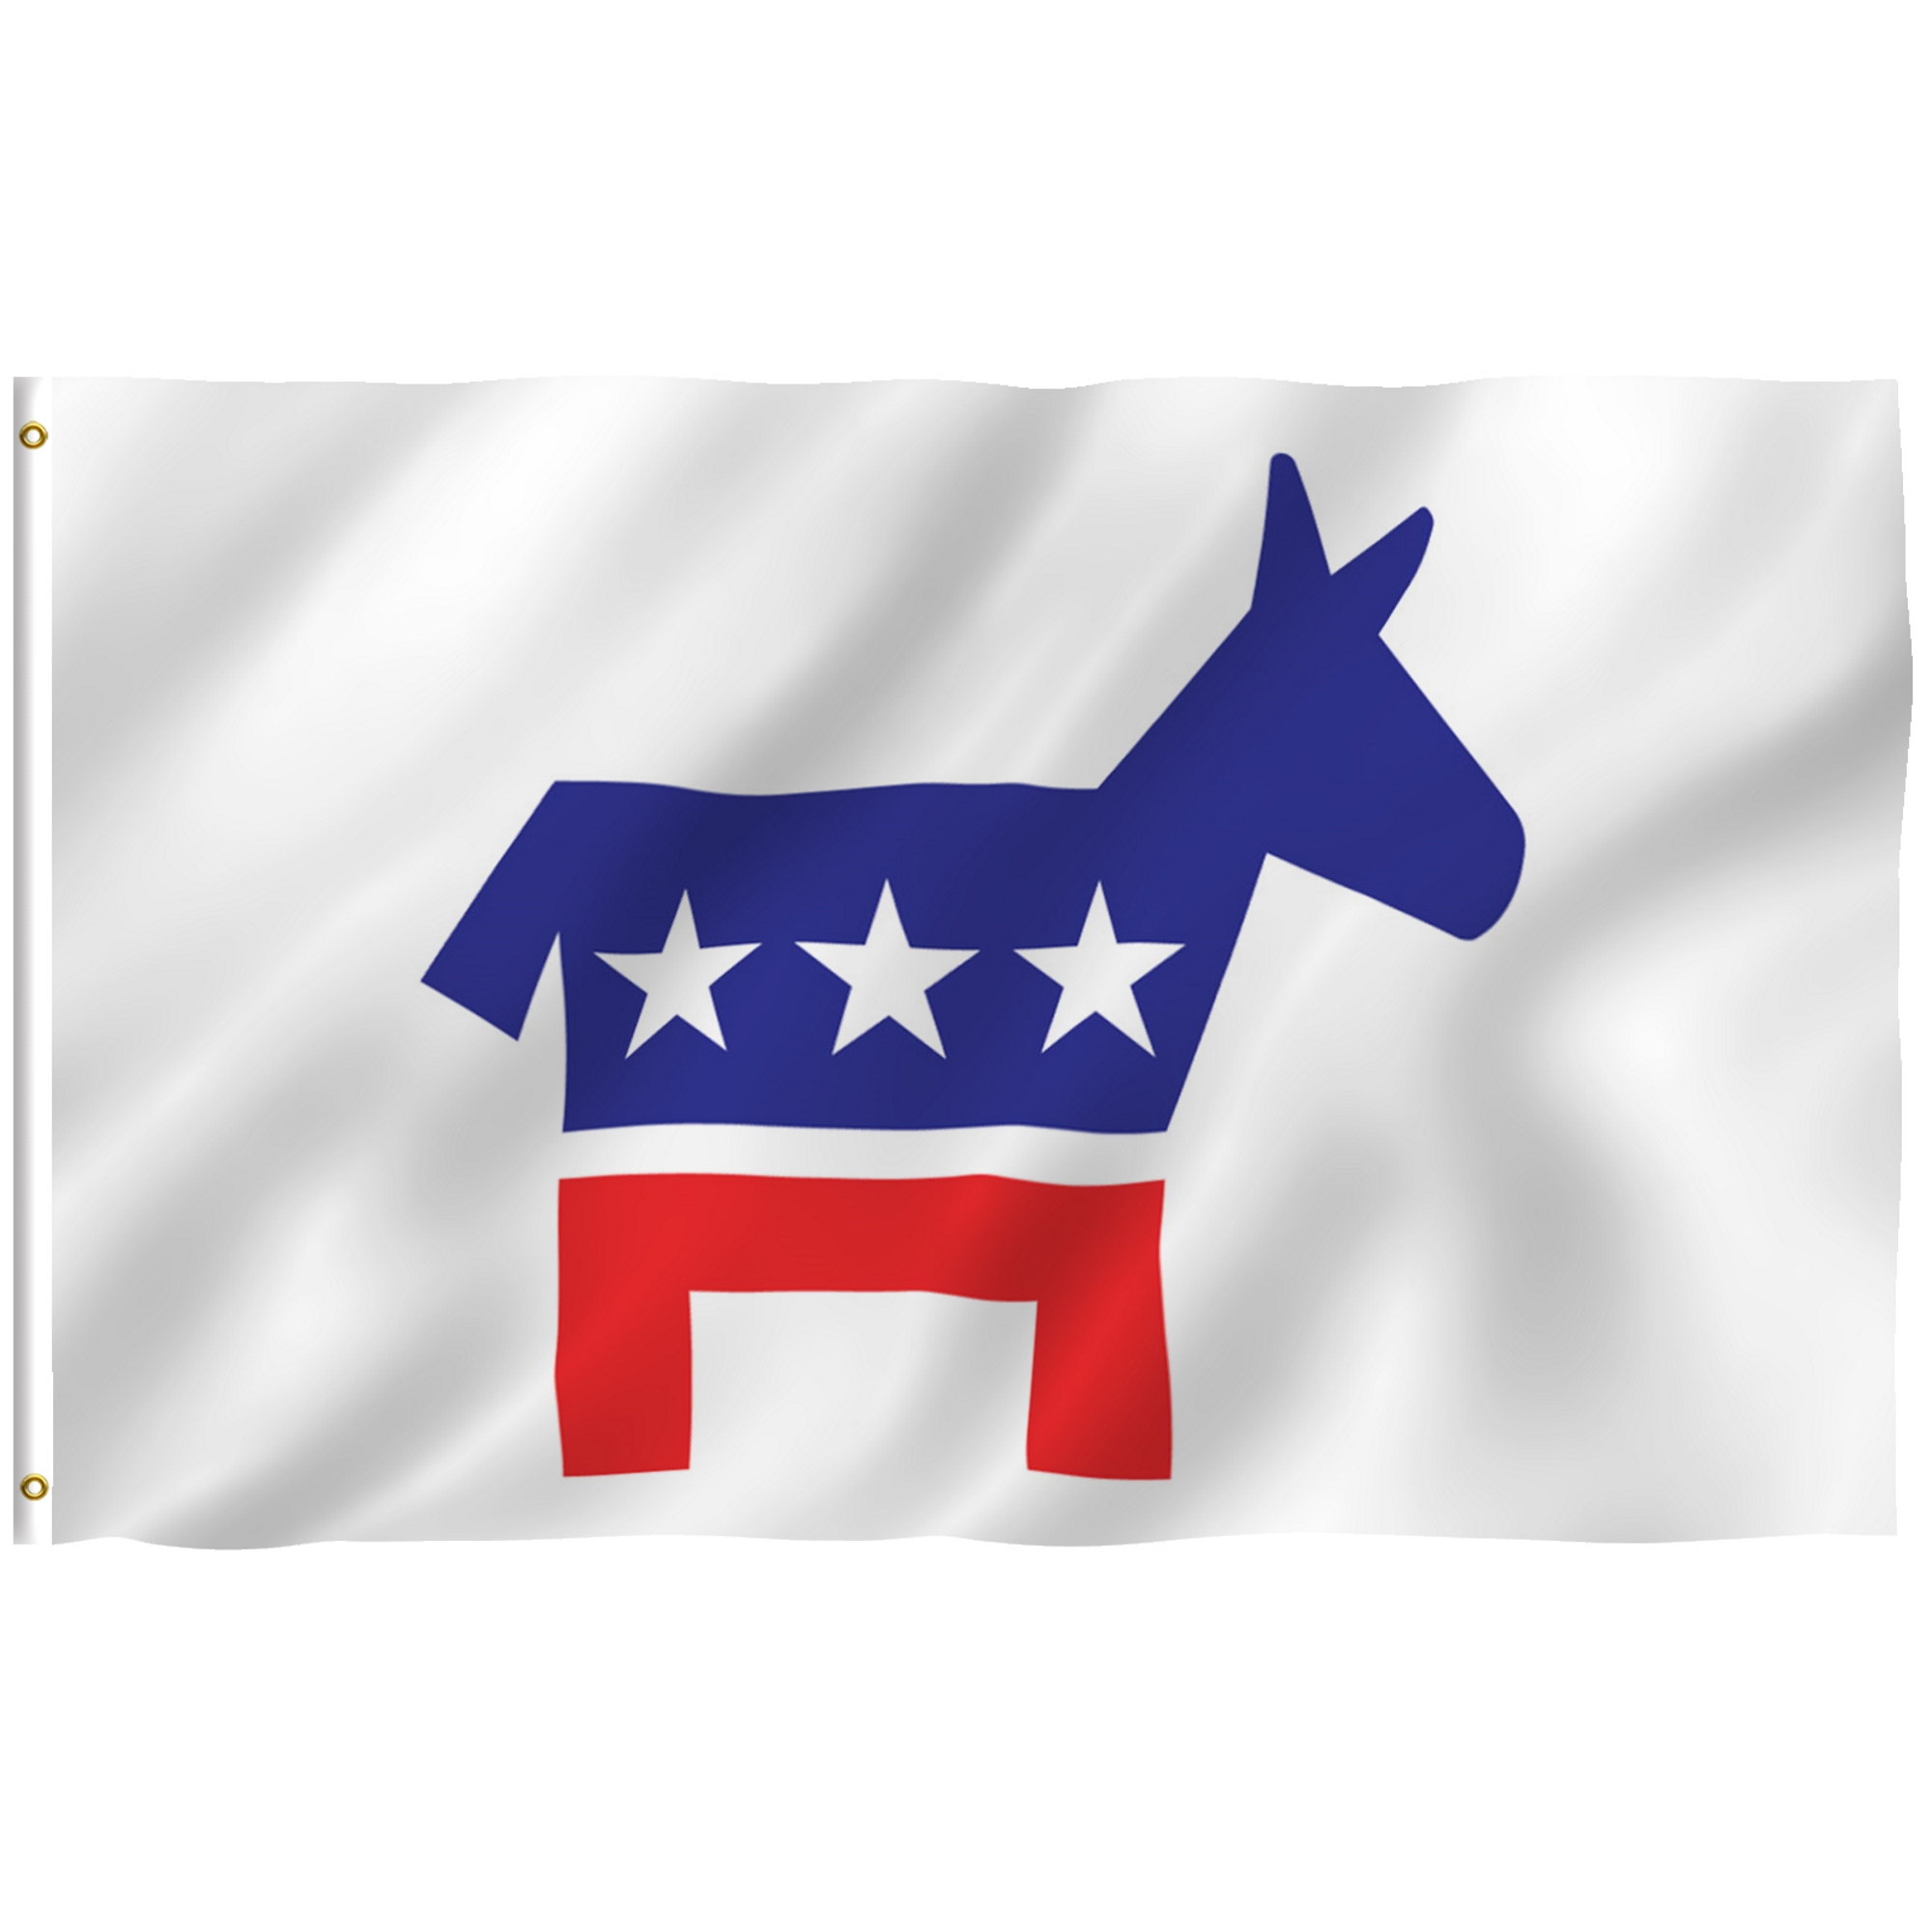 ANLEY [Fly Breeze] 3x5 Foot Democratic Party Flag - Vivid Color and UV Fade Resistant - Canvas Header and Double Stitched - Democrat Donkey Flags Polyester with Brass Grommets 3 X 5 Ft